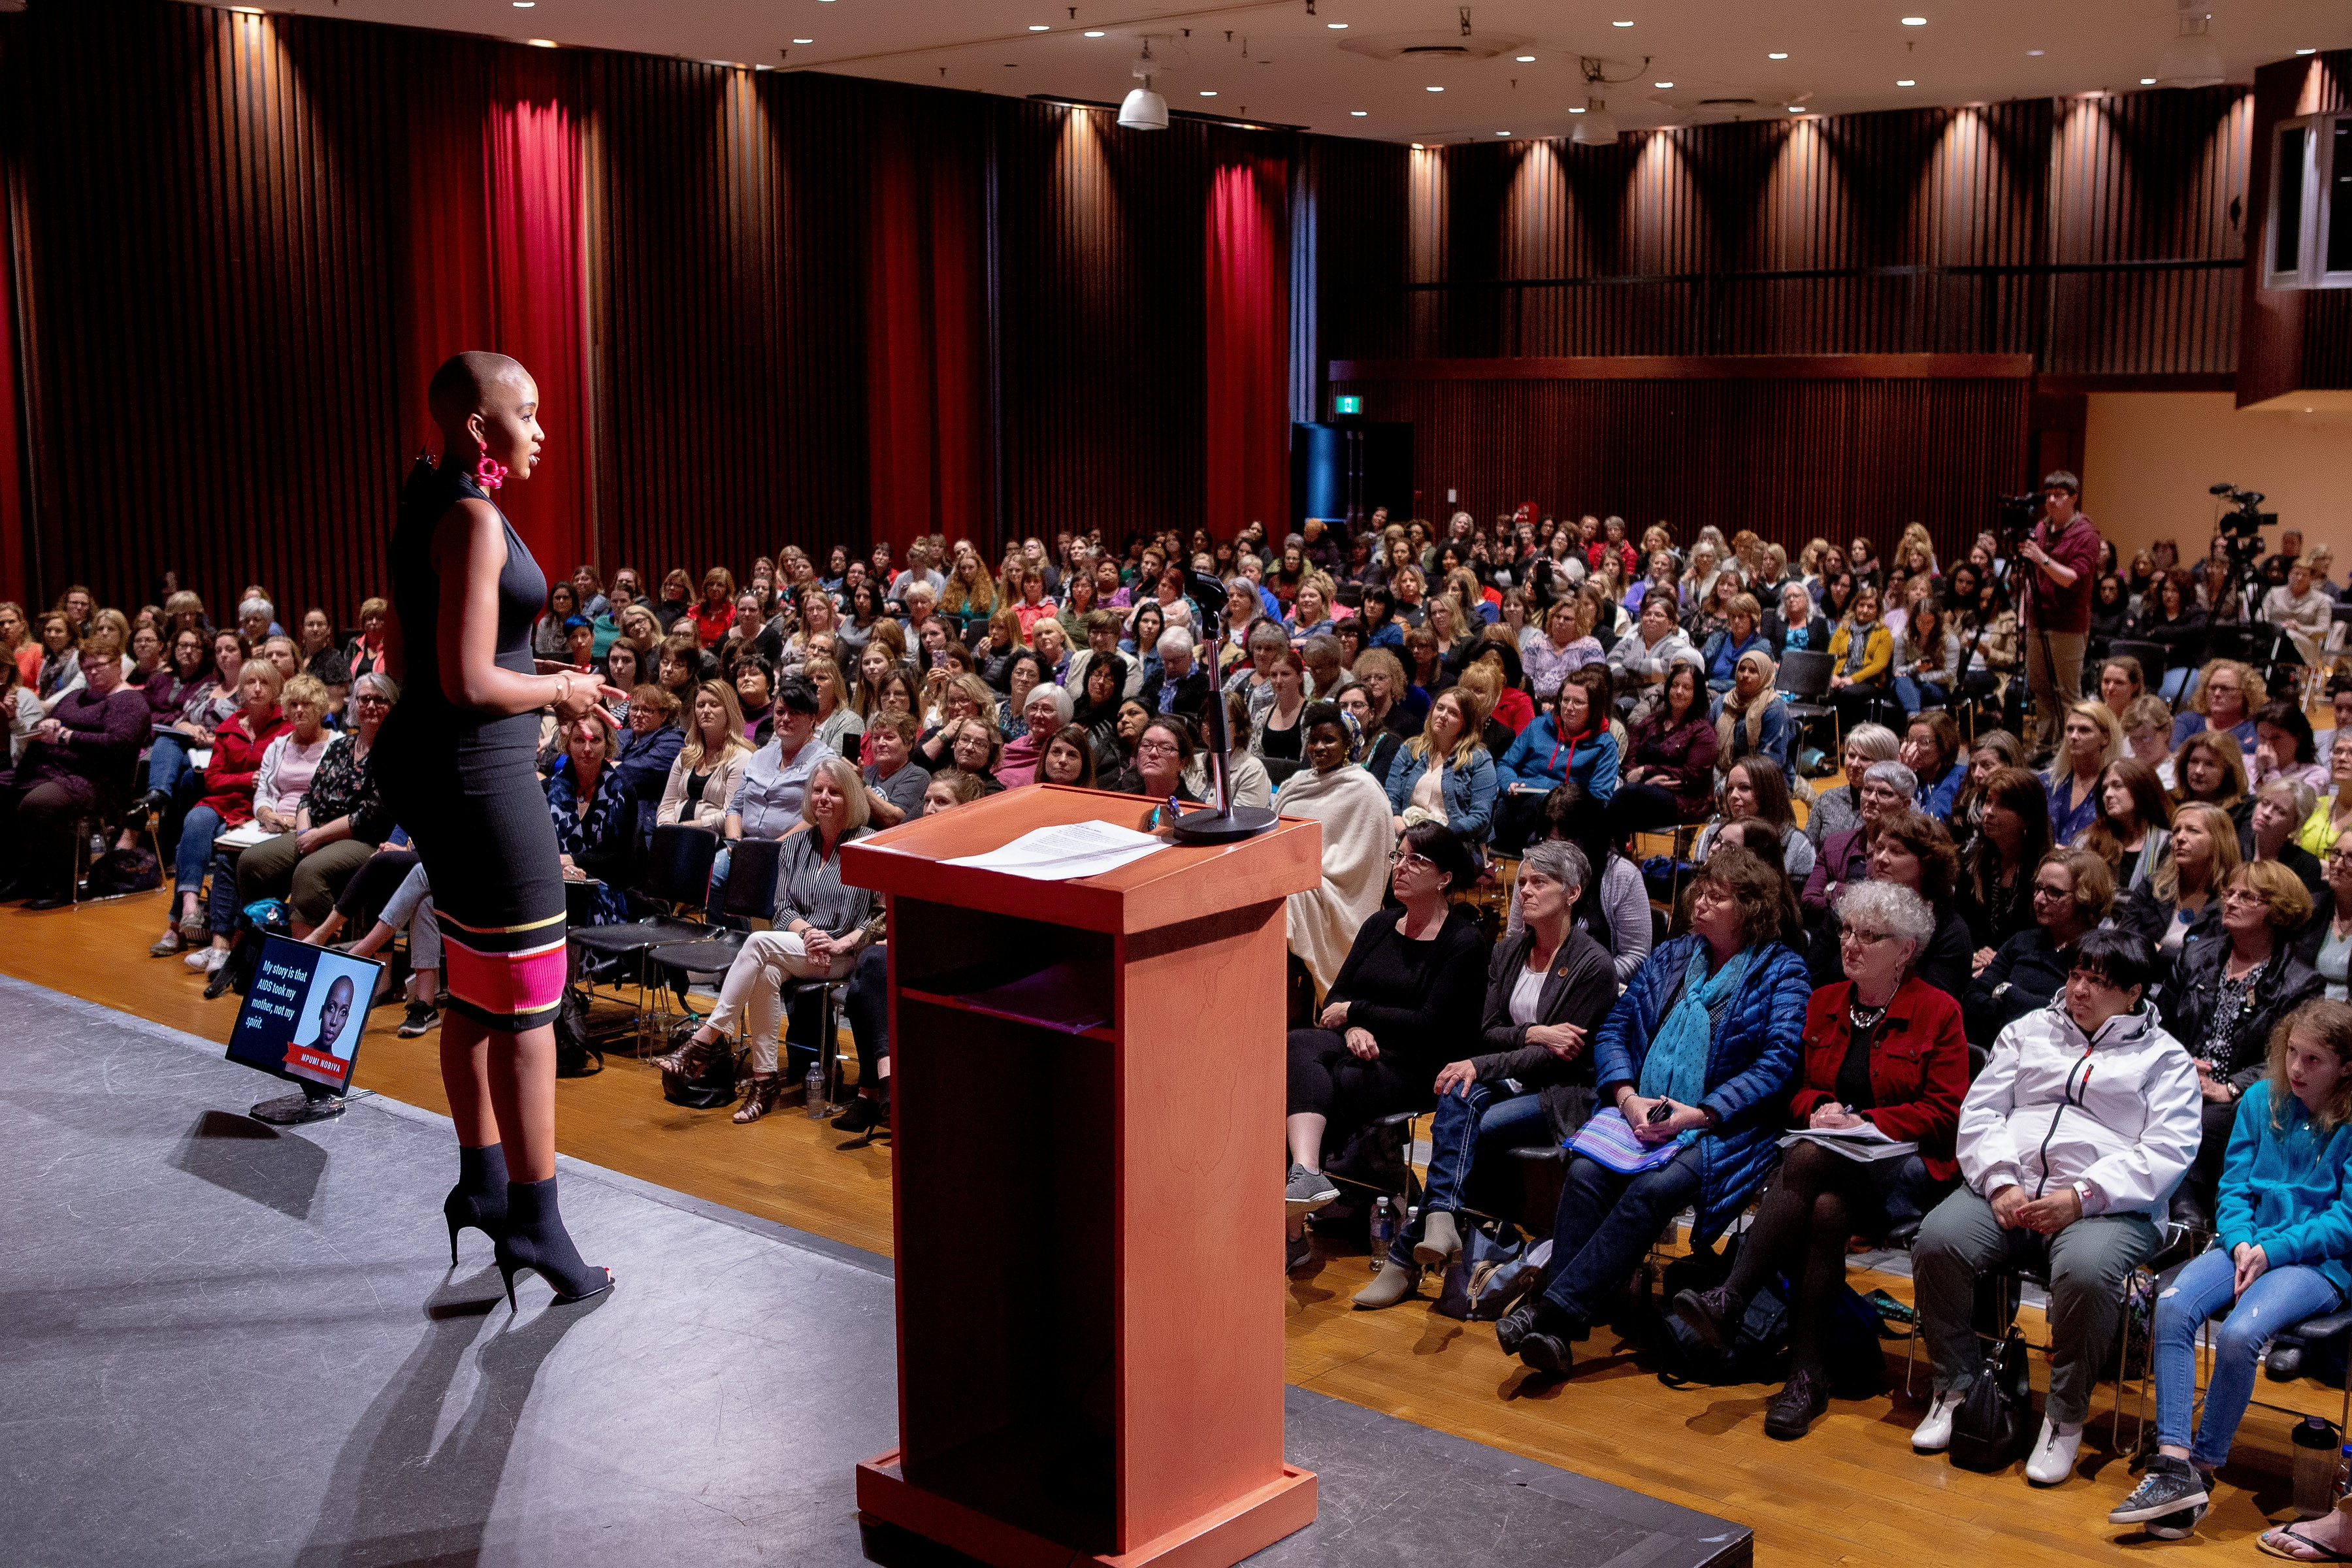 Become a Fearless Speaker - One Woman